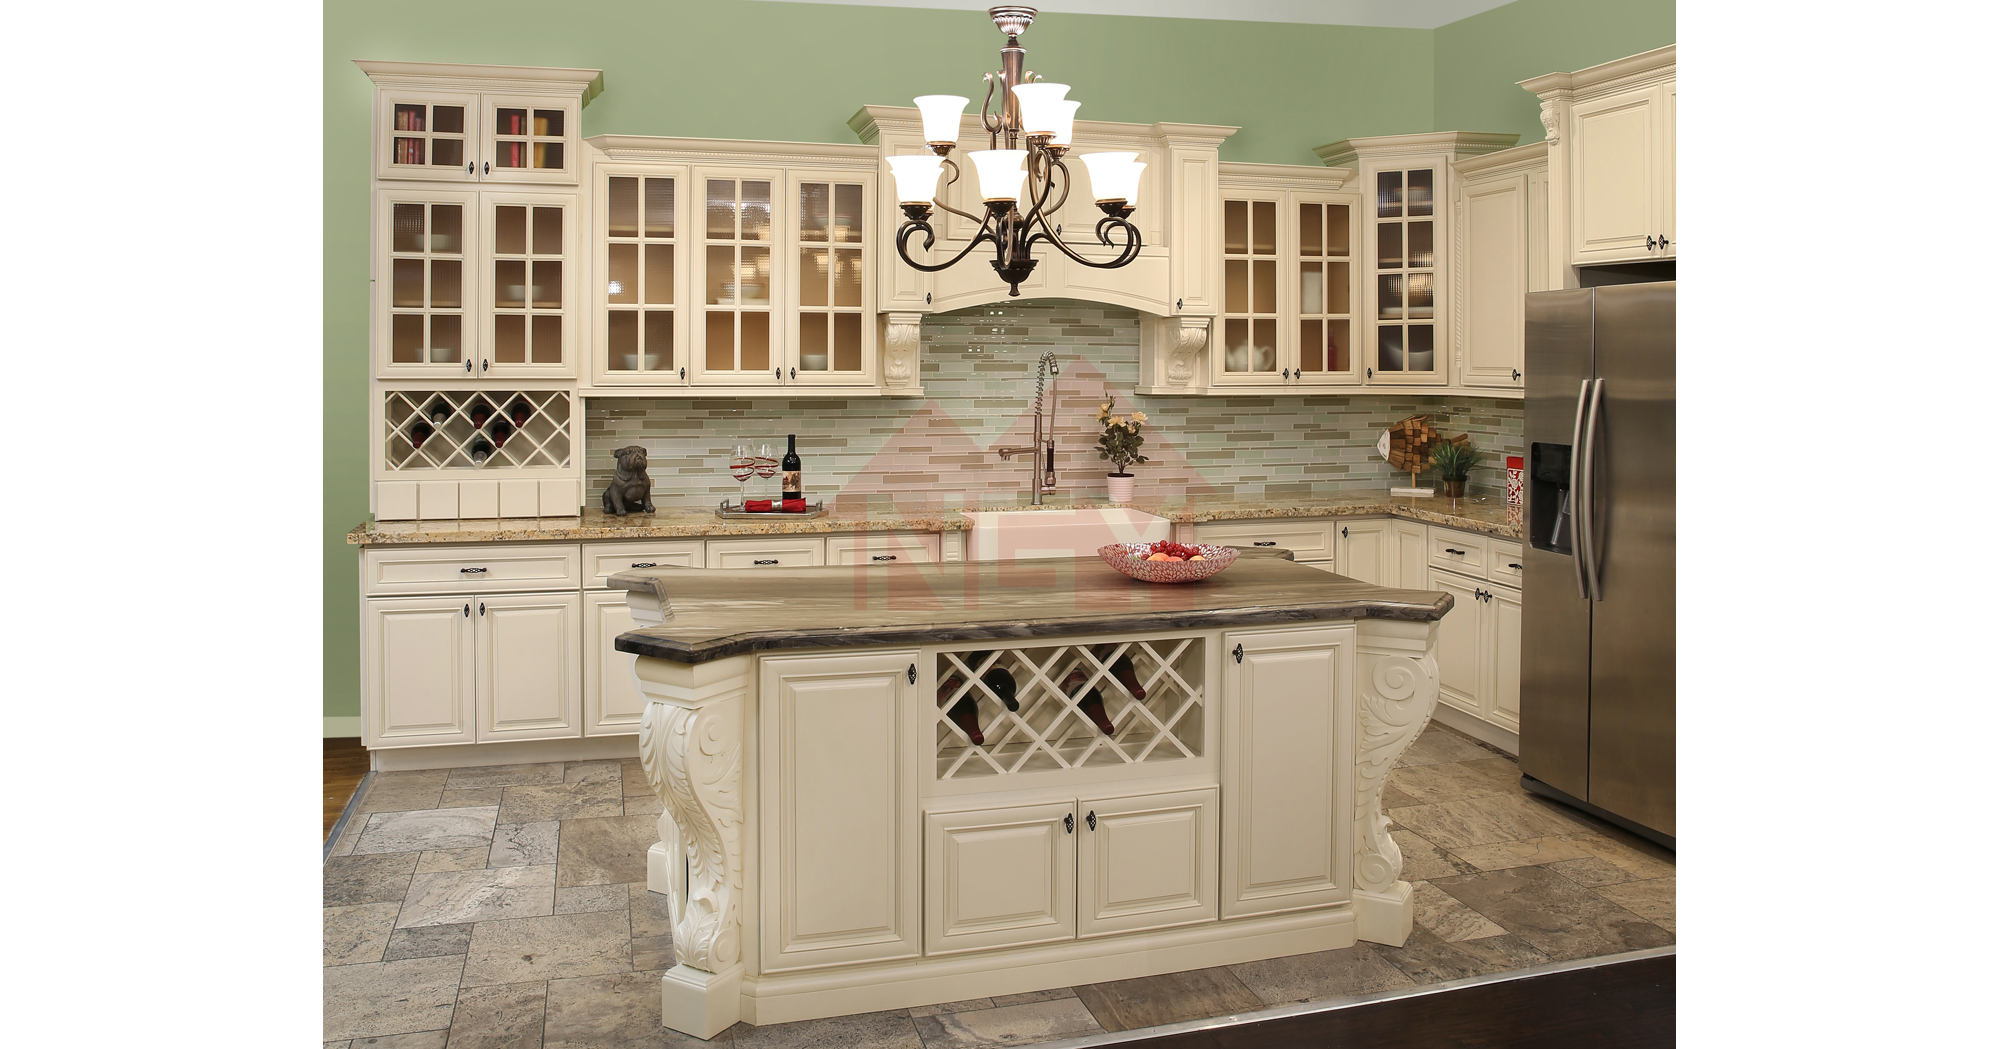 NGY Stones  Cabinets Inc  All Products  Kitchen